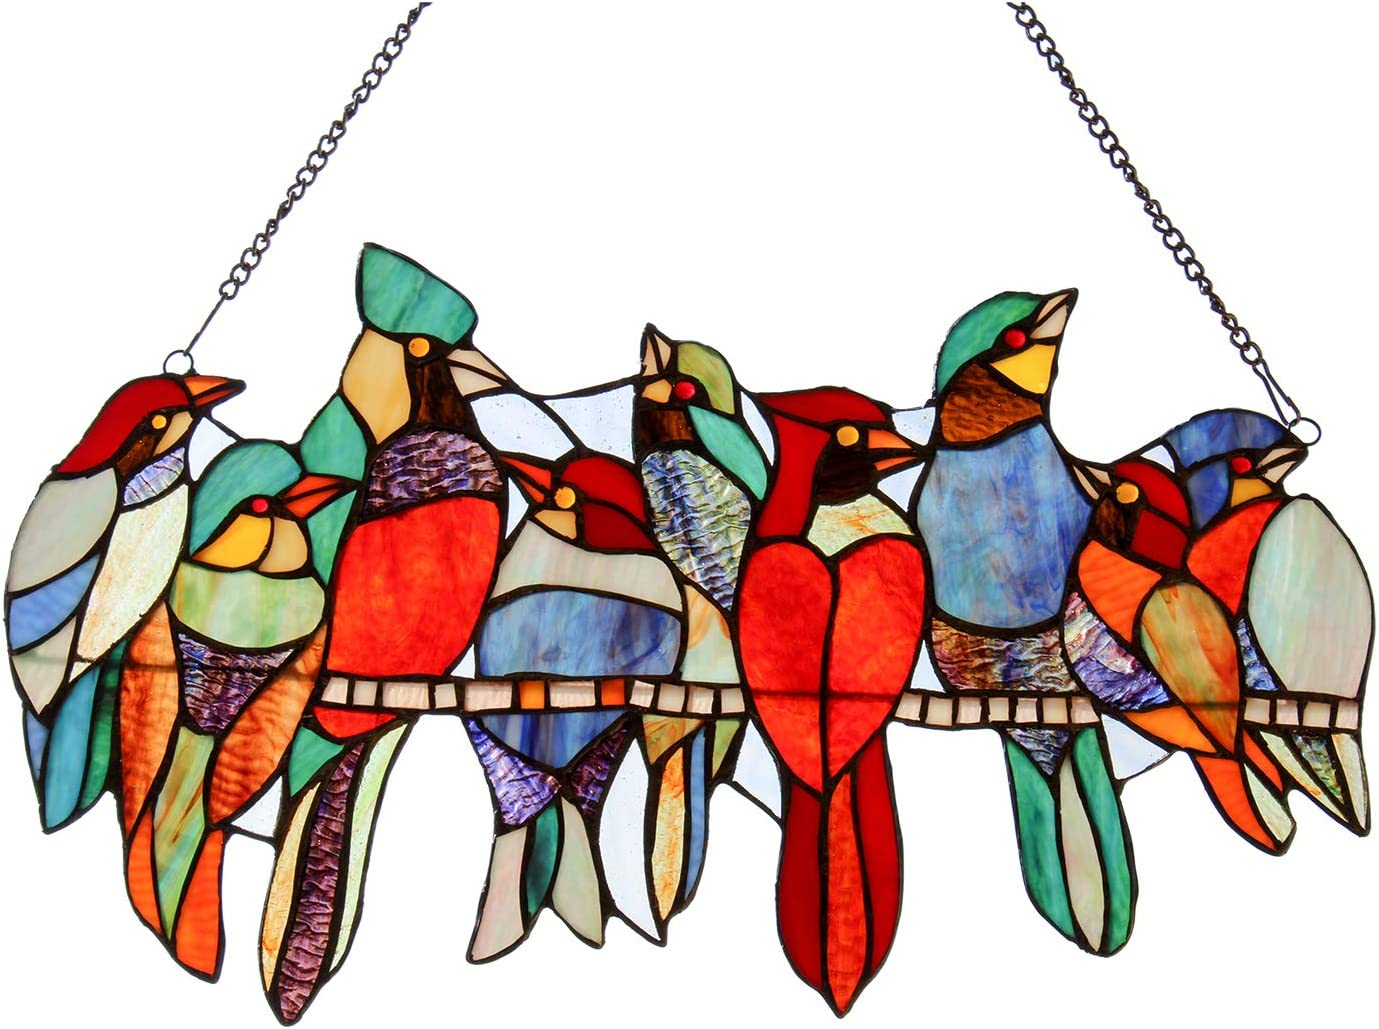 COTOSS Stained Glass Window Hangings 9 Wire Birds on a Suncatche Max 51% OFF Popular brand in the world